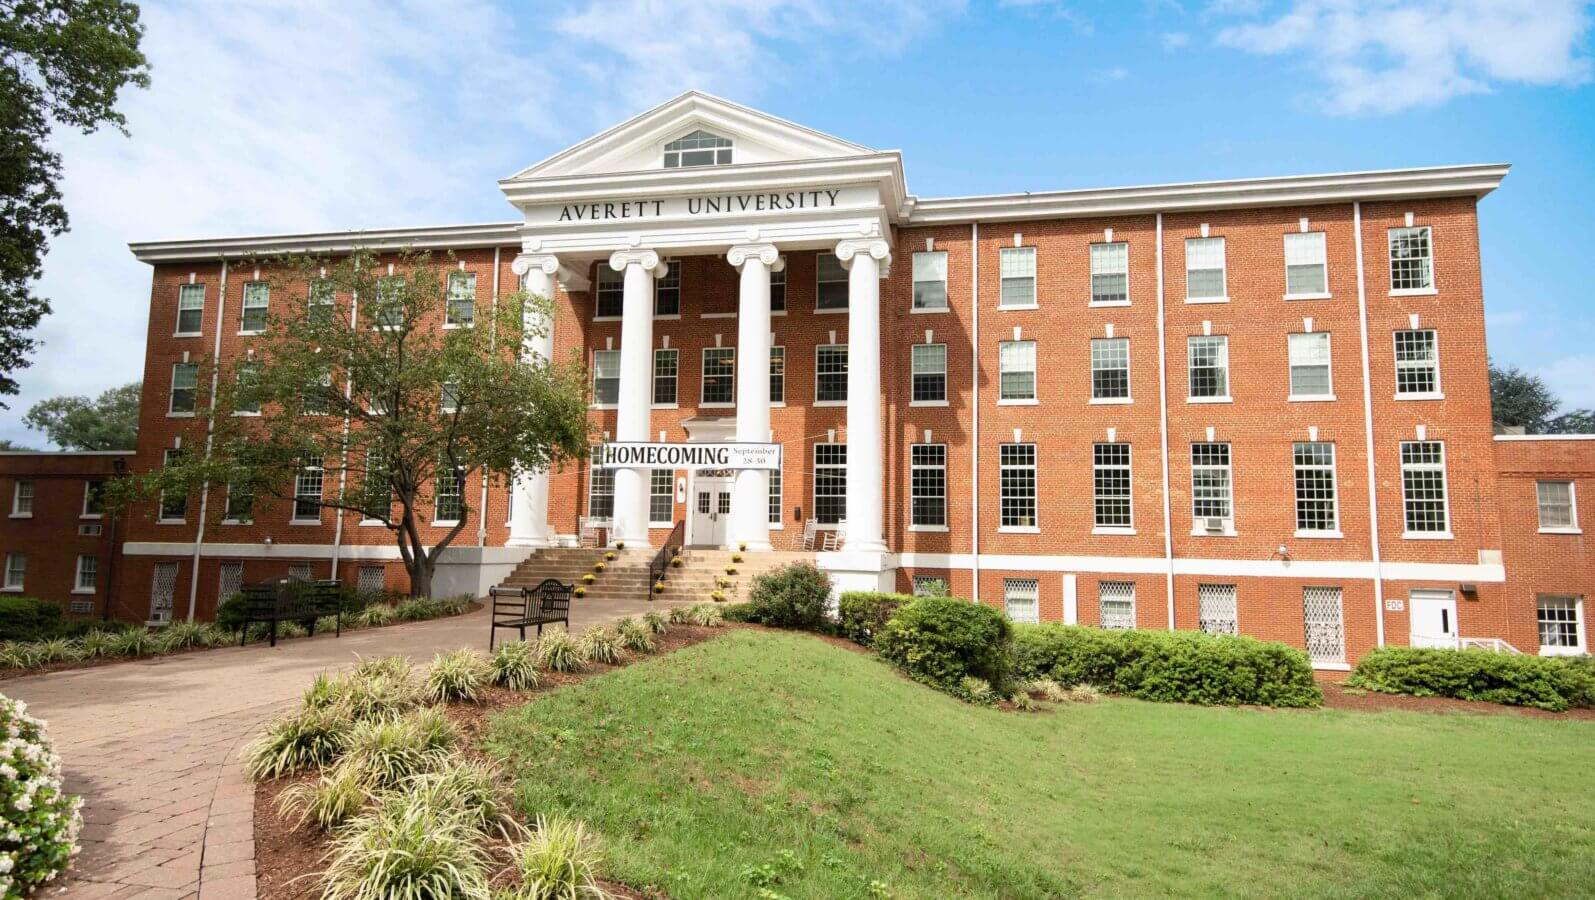 Averett University Main Hall